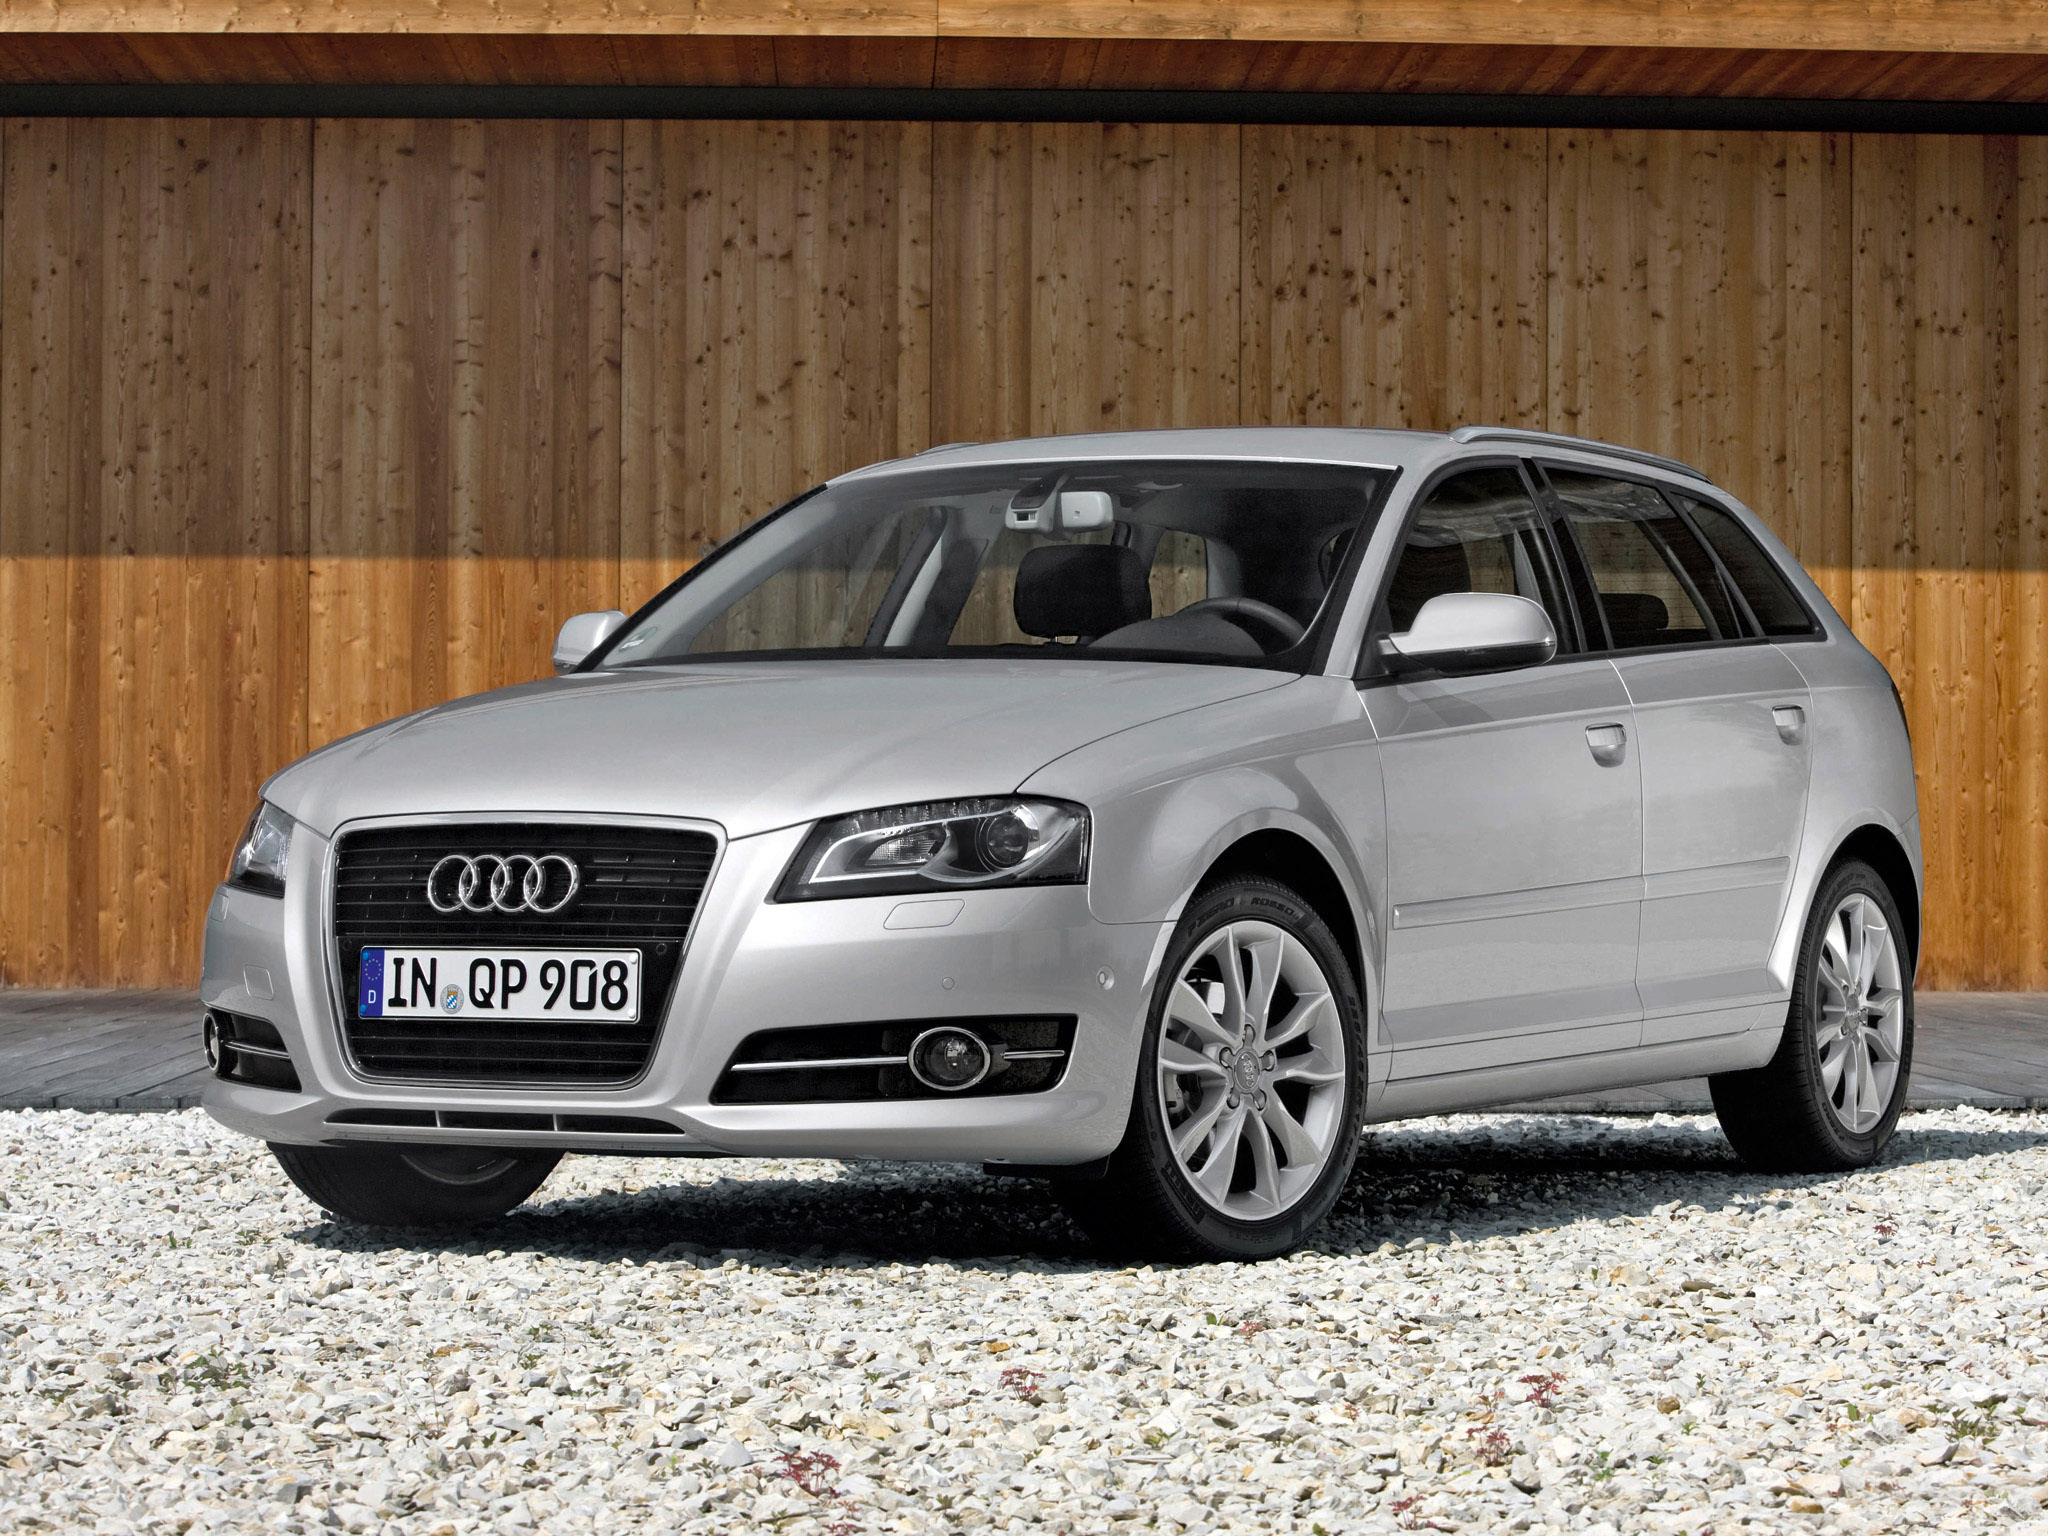 audi a3 sportback 8pa 2010 audi a3 sportback 8pa 2010 photo 01 car in pictures car photo gallery. Black Bedroom Furniture Sets. Home Design Ideas